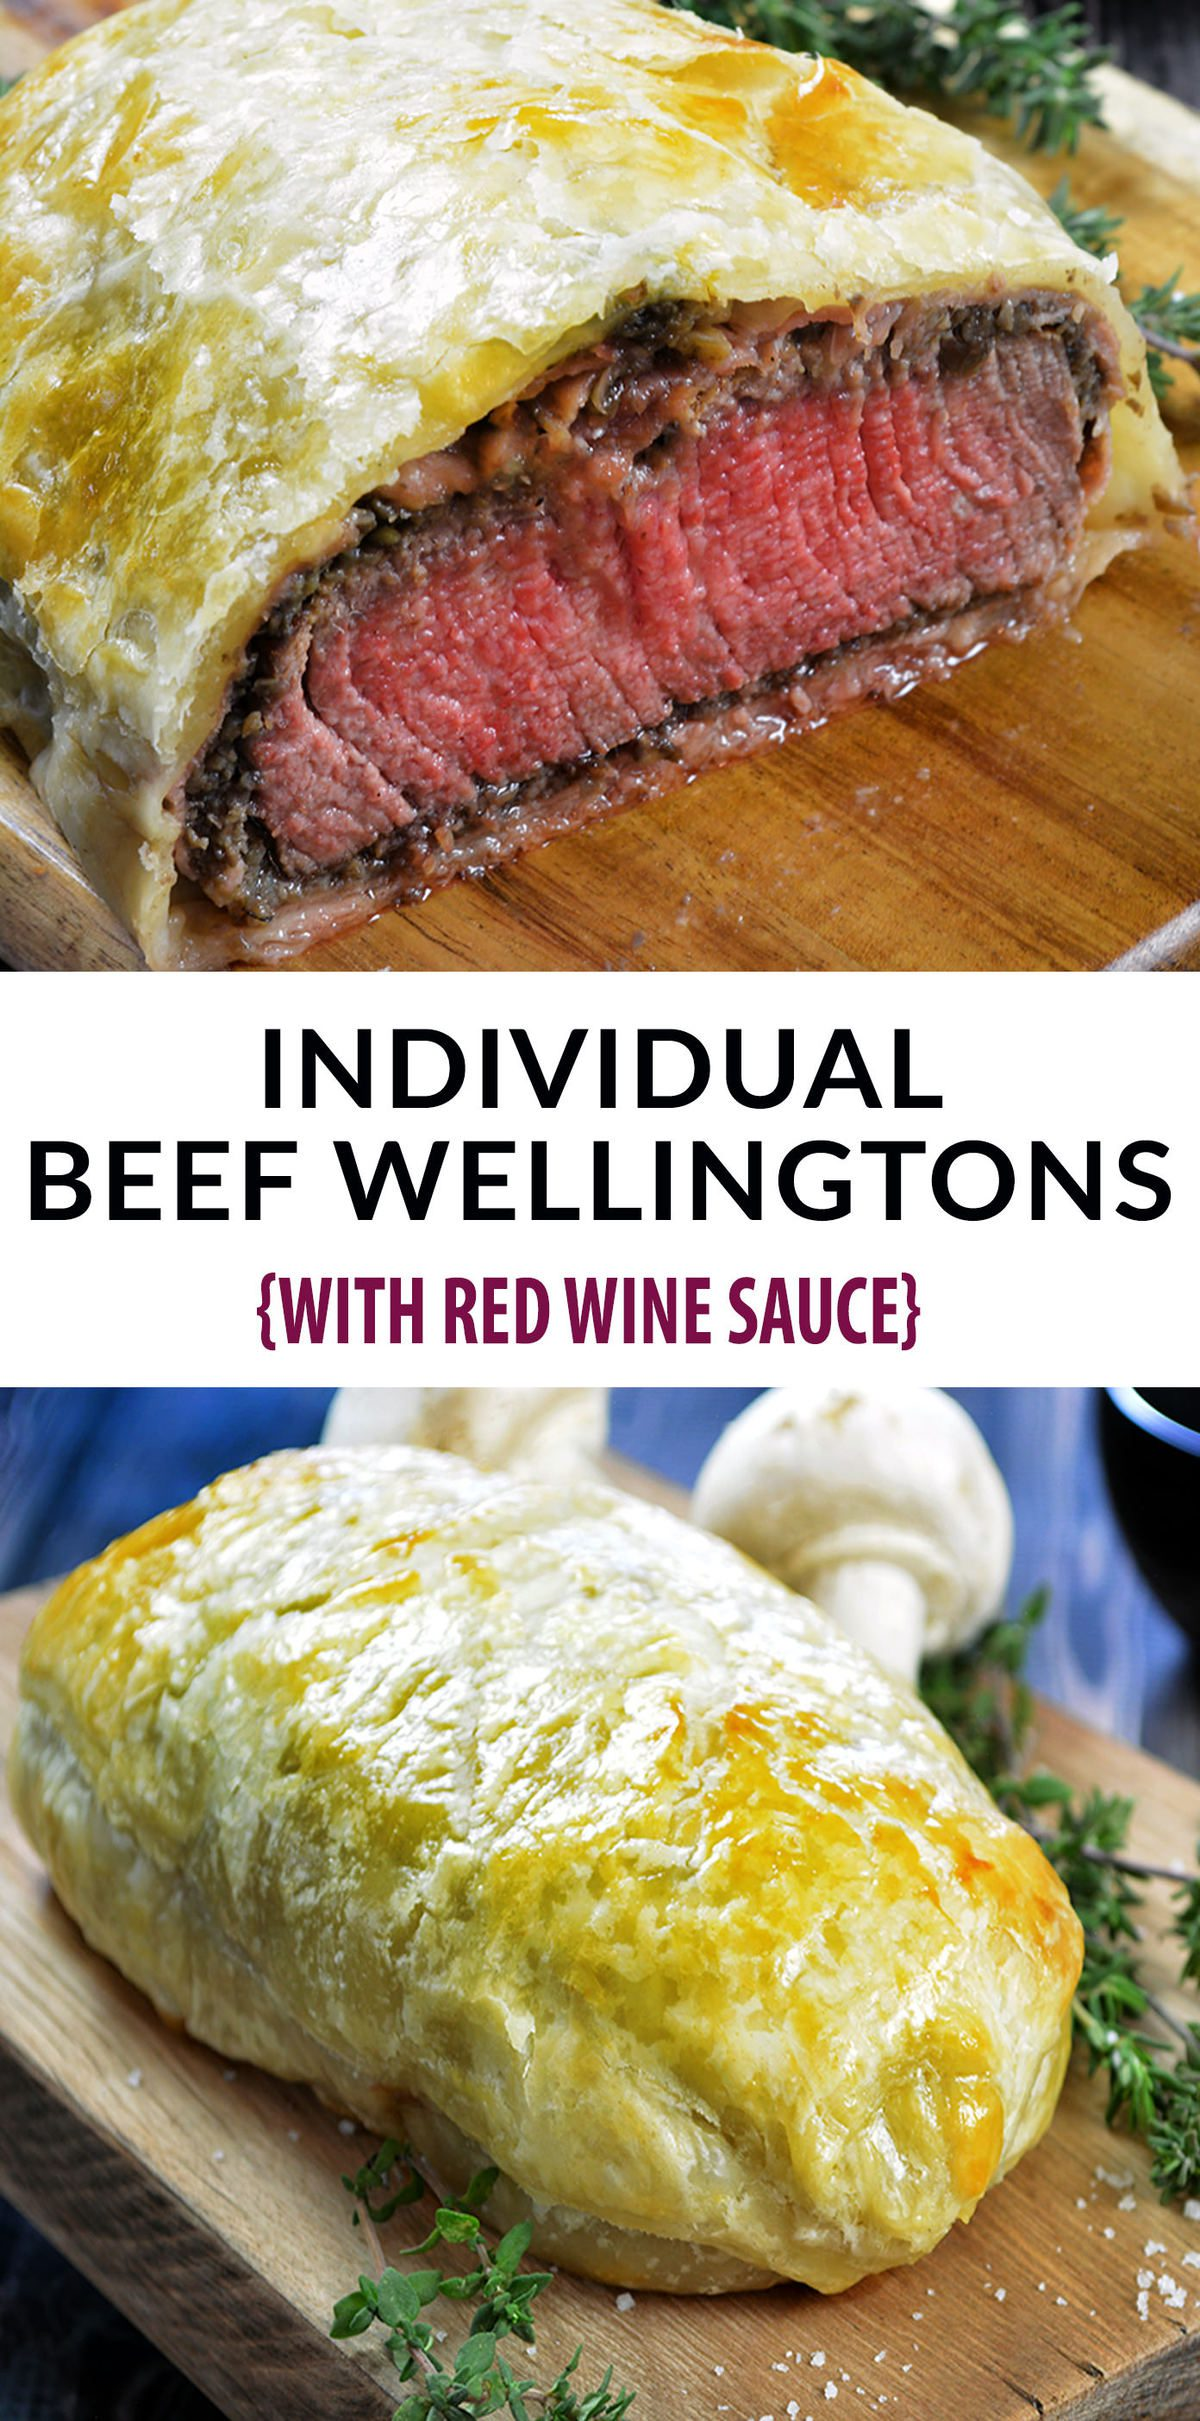 Beef Wellington Recipe - just like Gordon Ramsey's Beef Wellington. Decadent and tender filet mignon, topped with a rich mushroom duxelles, delicate prosciutto and wrapped in a golden, buttery puff pastry. Individual Beef Wellington is the perfect Valentine's Day meal. #valentinesdayfood #valentinesdayideas #valentinesdaydinner #filetmignon #beefrecipes #beeftenderloinrecipes #puffpastryrecipes #dinnerrecipes #redwinerecipes #beefwellington #beefwellingtonrecipe #beefwellingtongordeonramsey #beefwellingtoneasy #beefwellingtonsauce